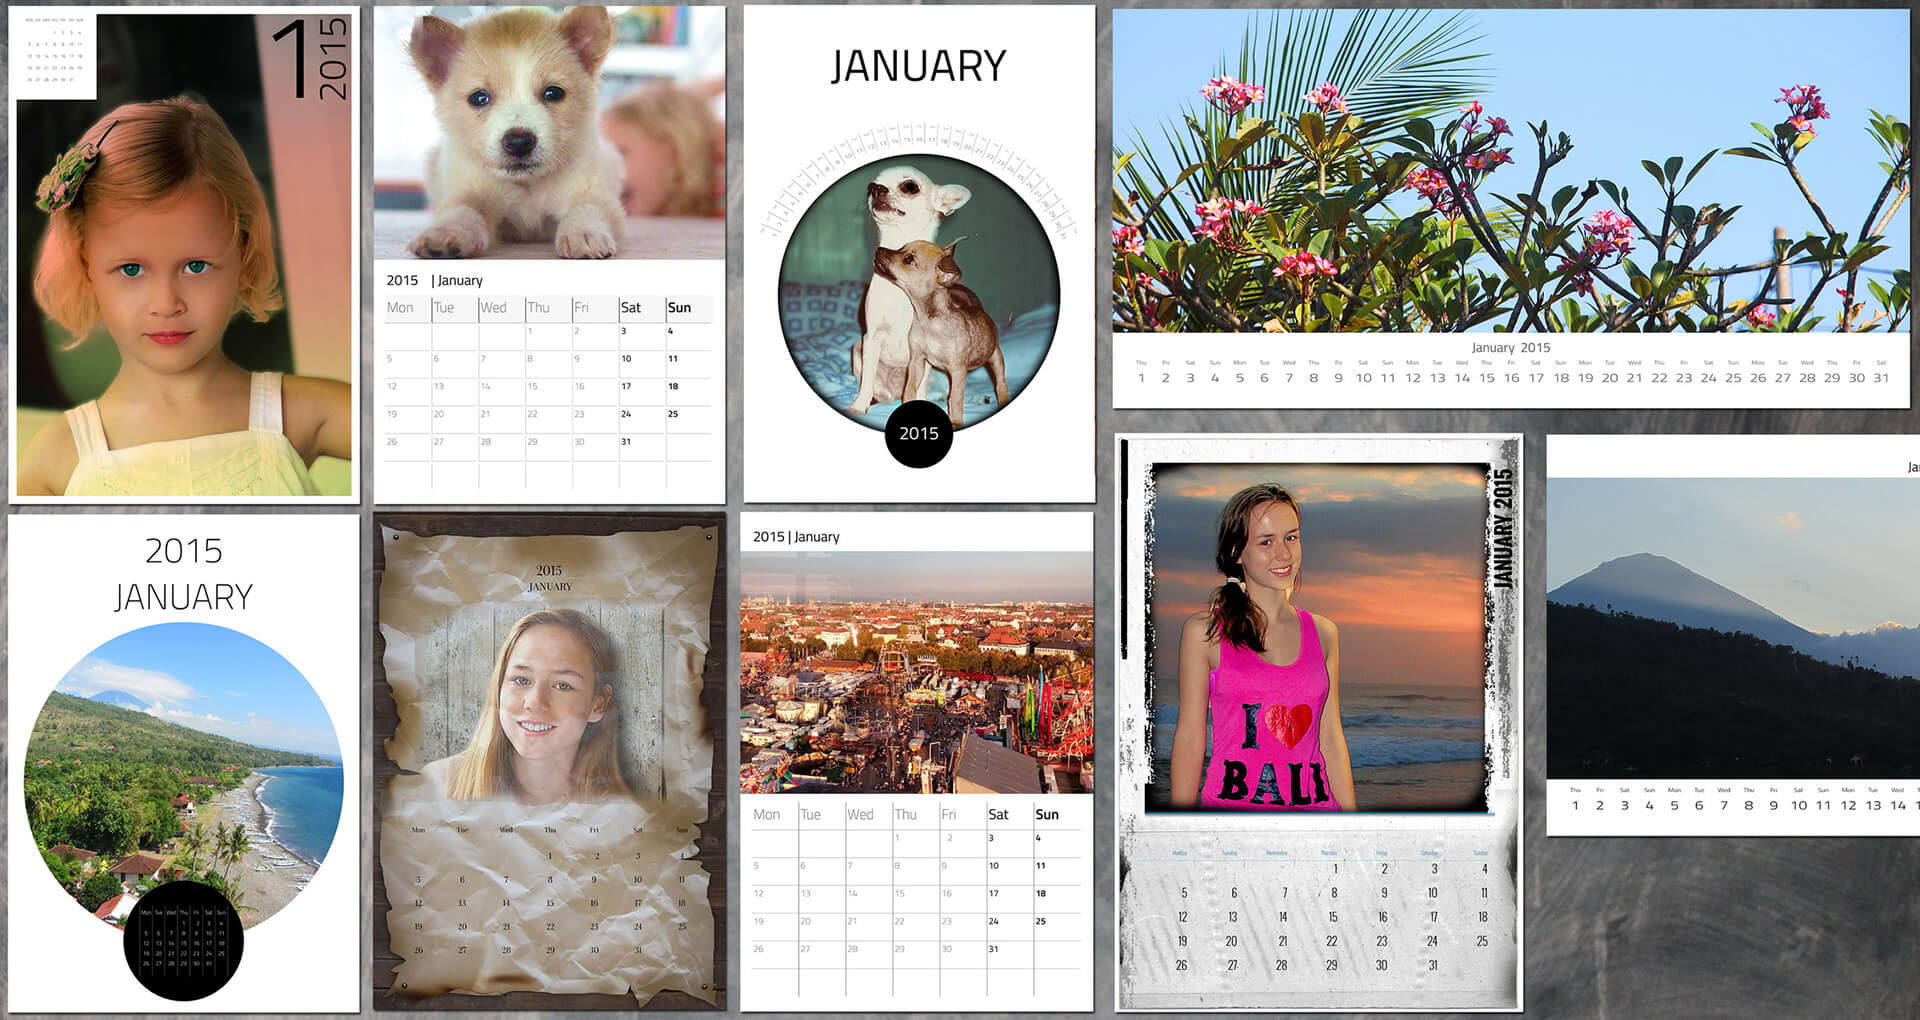 webtoprint fotobook variable graphics walltattoo popart calendar smartphone case greeting card 5 2